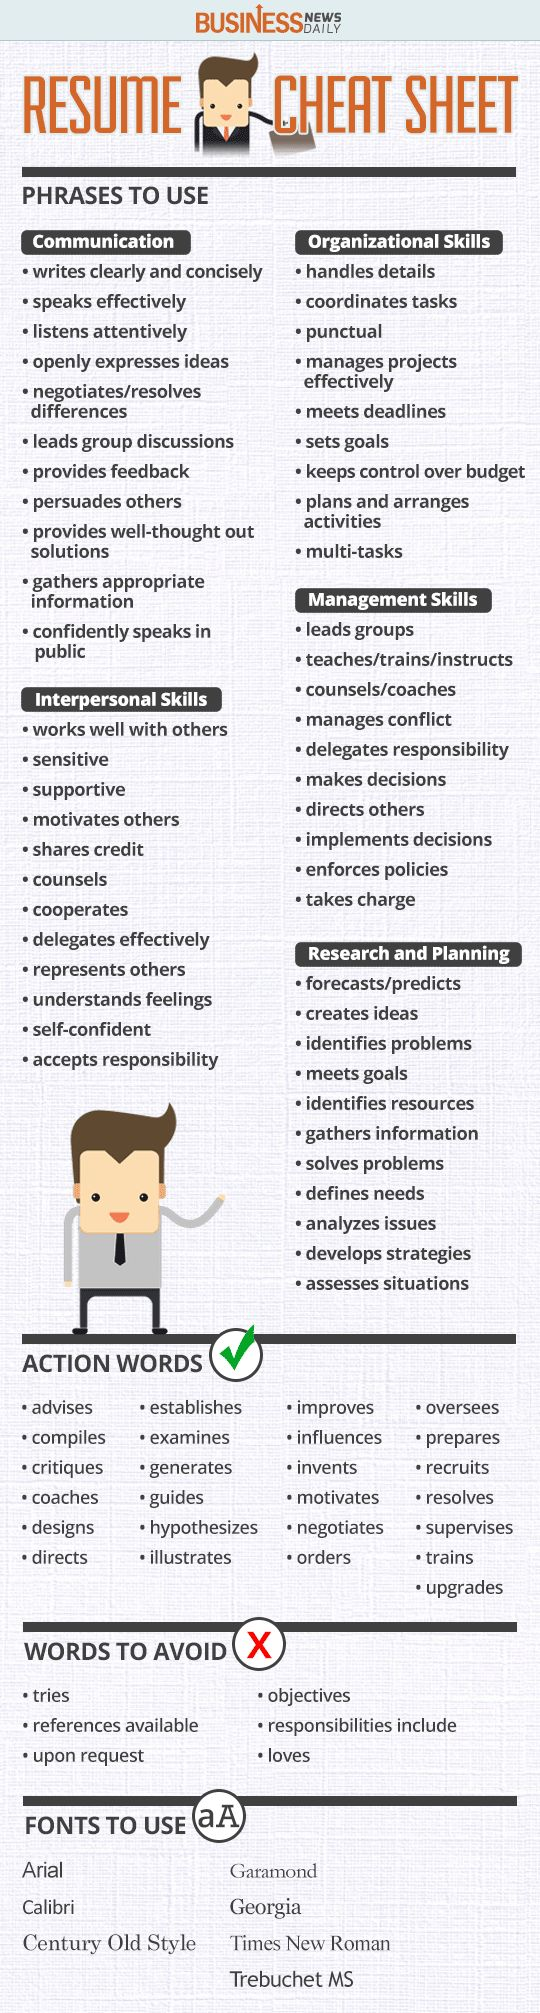 Opposenewapstandardsus  Scenic  Ideas About Resume On Pinterest  Cv Format Resume Cv And  With Remarkable Resume Cheat Sheet Infographic Andrews Almost Done With A Complete Unit On Employment Which With Nice General Manager Restaurant Resume Also Board Of Directors Resume In Addition Resume For College Student Still In School And Massage Therapist Resume Objective As Well As Strengths Resume Additionally Resume For Daycare Worker From Pinterestcom With Opposenewapstandardsus  Remarkable  Ideas About Resume On Pinterest  Cv Format Resume Cv And  With Nice Resume Cheat Sheet Infographic Andrews Almost Done With A Complete Unit On Employment Which And Scenic General Manager Restaurant Resume Also Board Of Directors Resume In Addition Resume For College Student Still In School From Pinterestcom